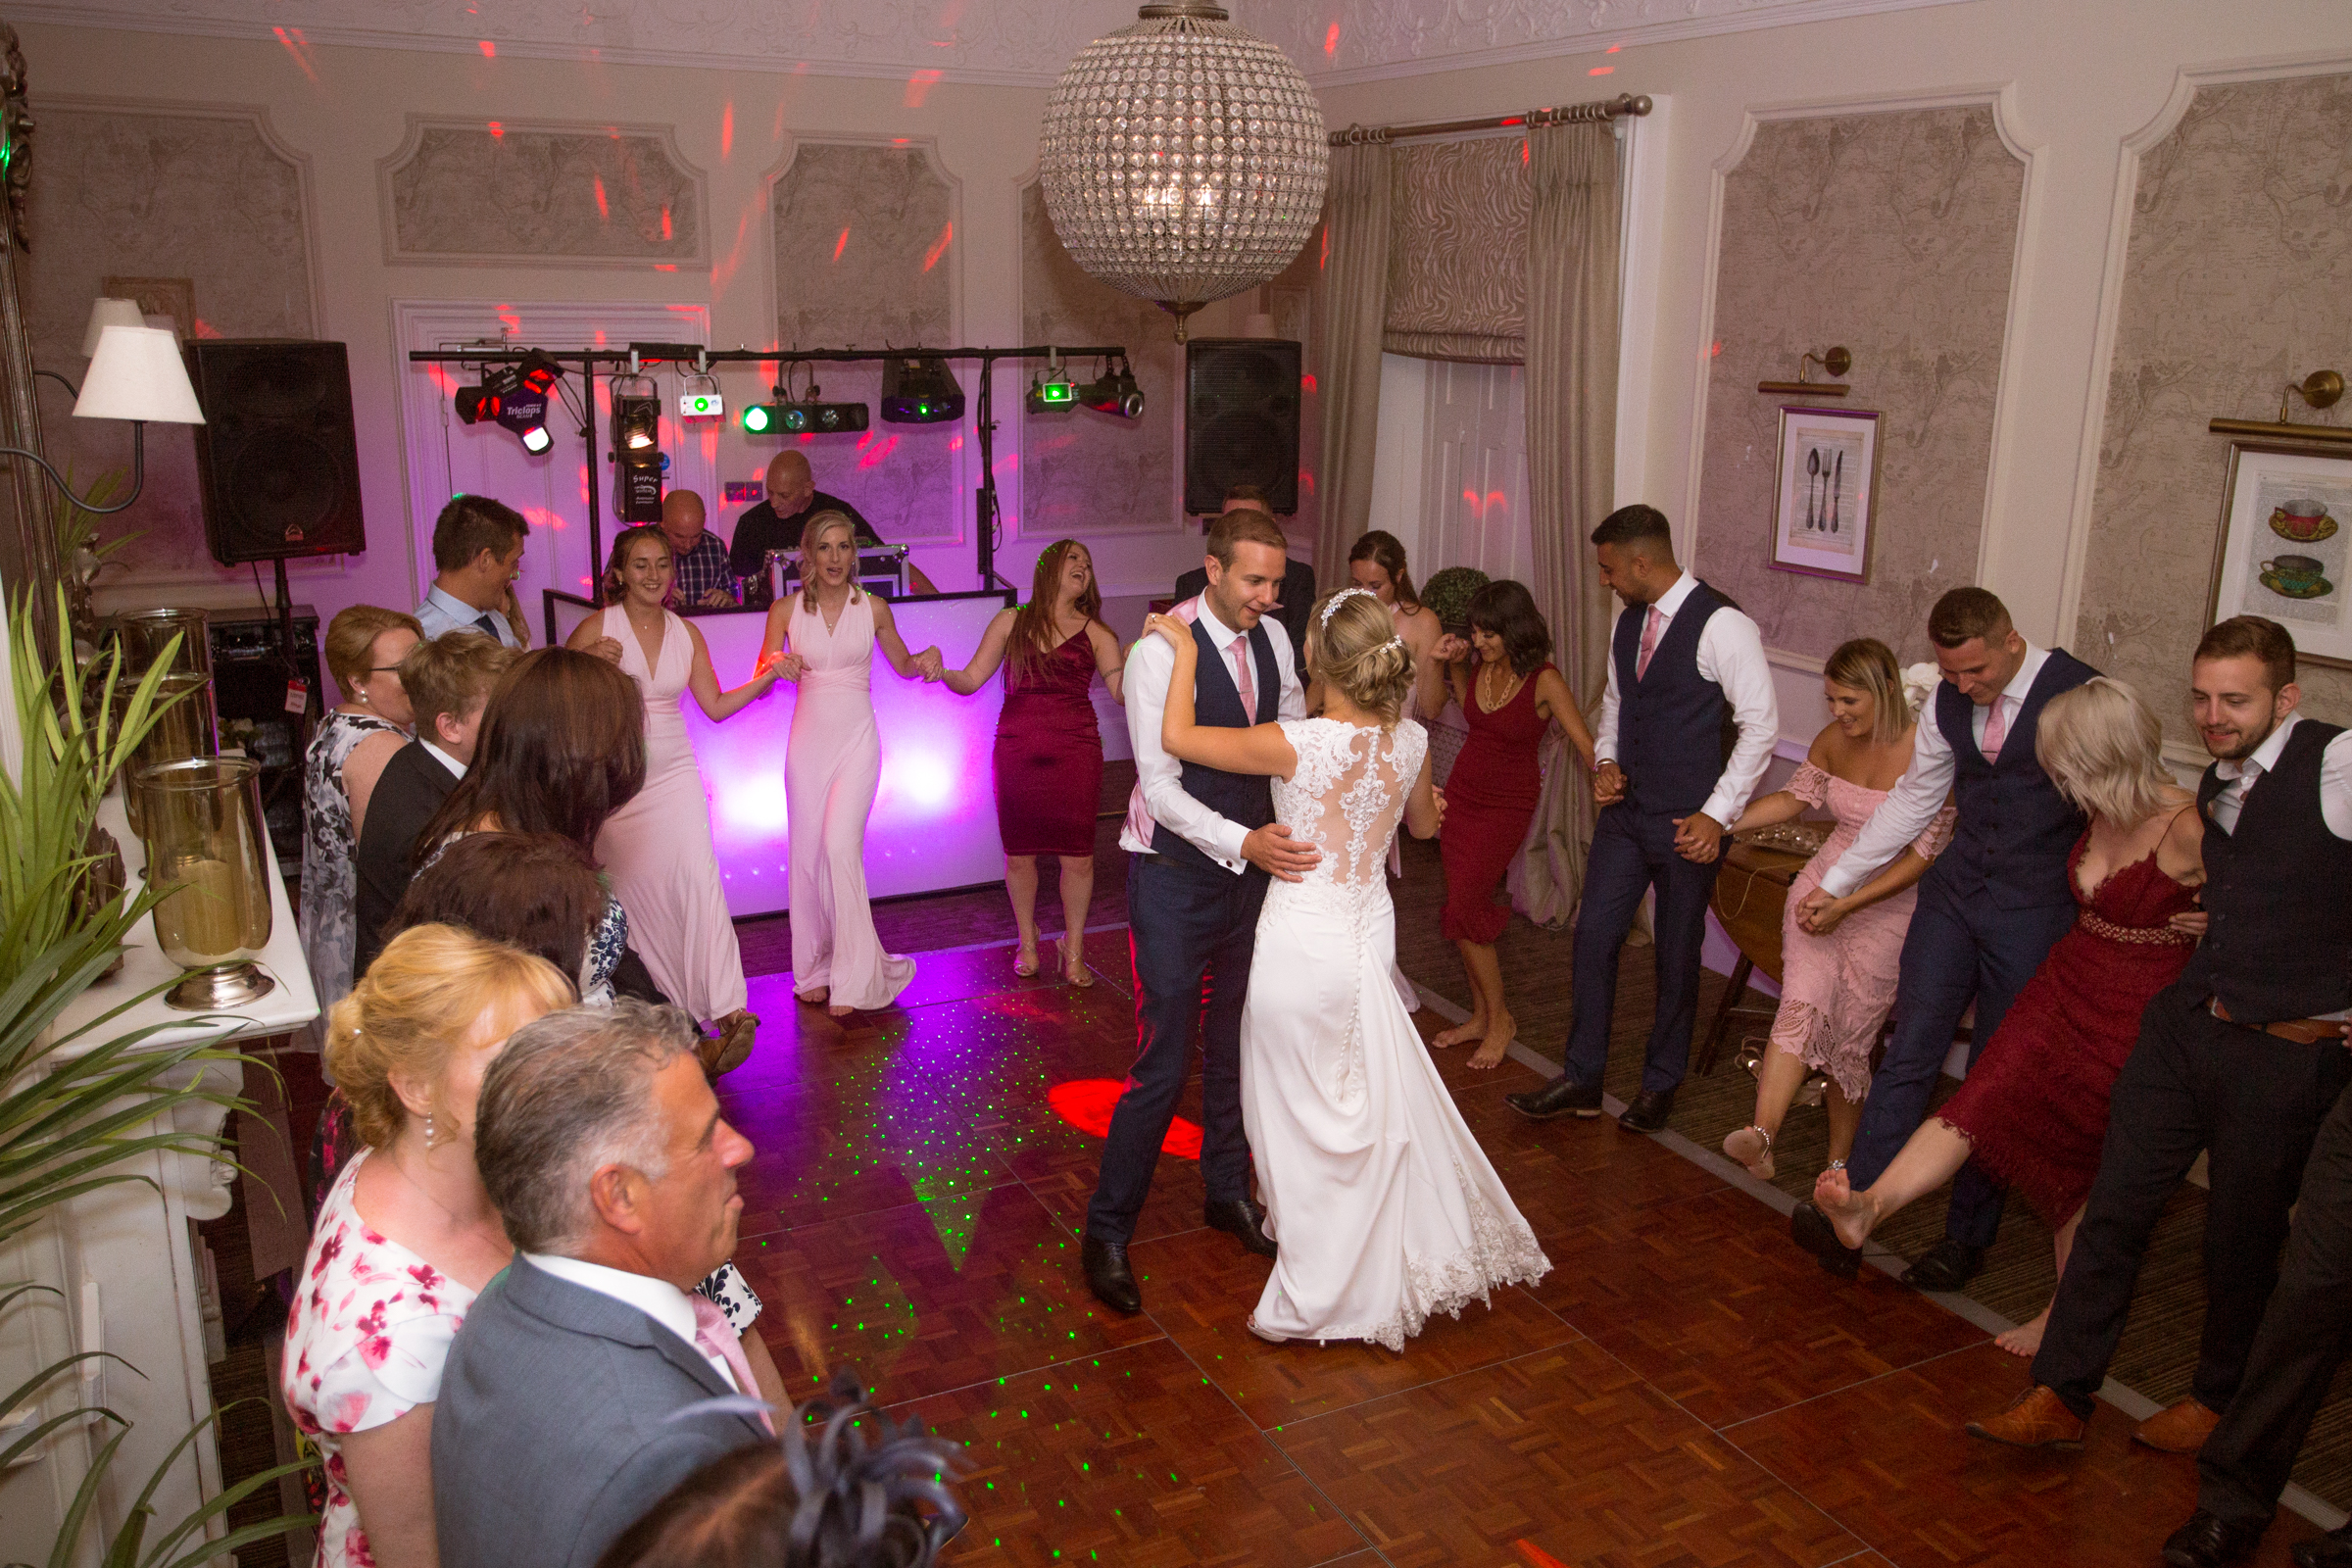 Capewell-Wedding-20180804-0680.jpg